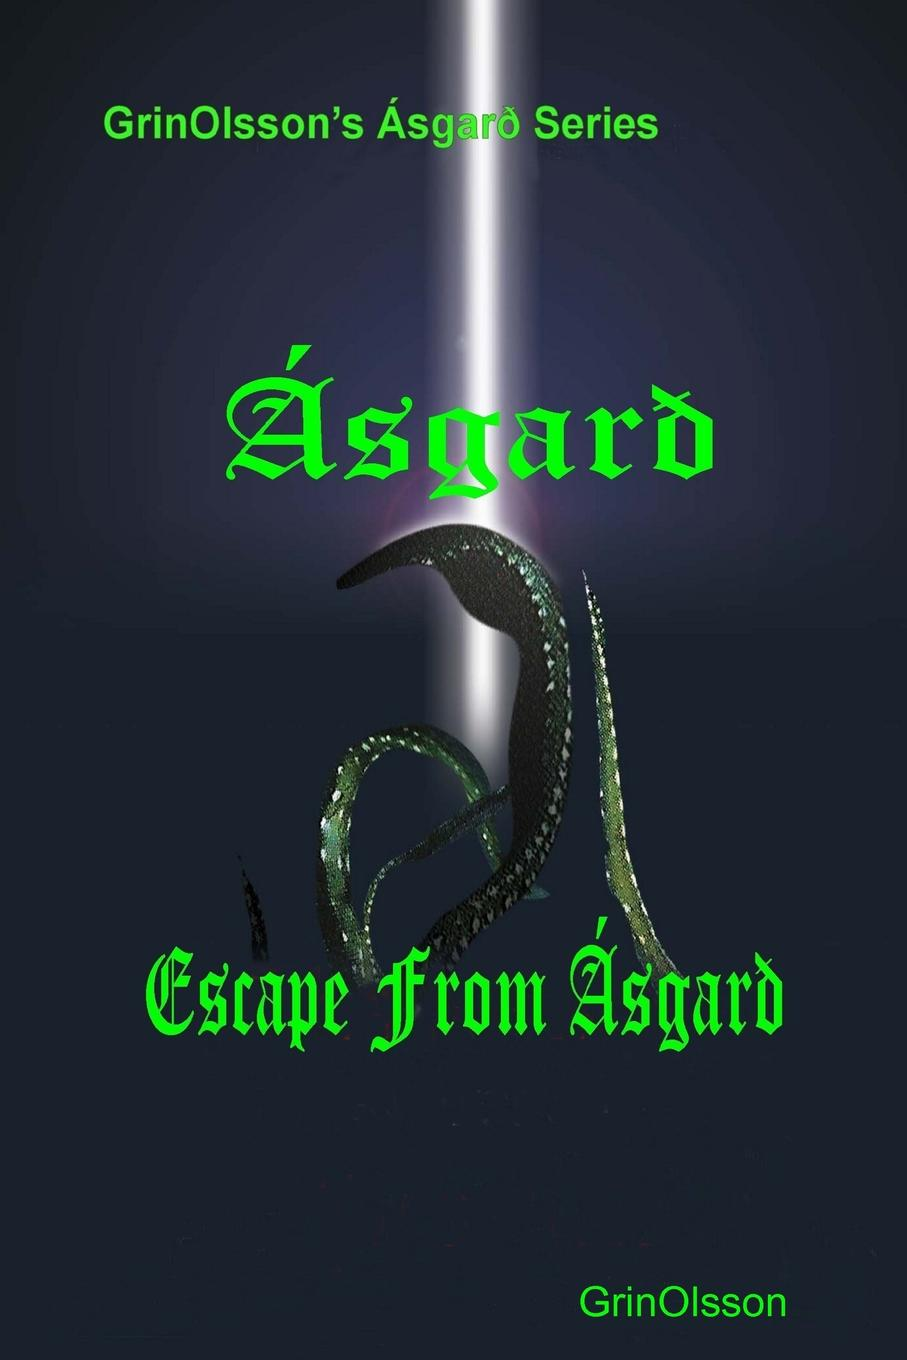 Grinolsson Asgard - Escape from Asgard yvonne vaz ezdani new songs of the survivors the exodus of indians from burma